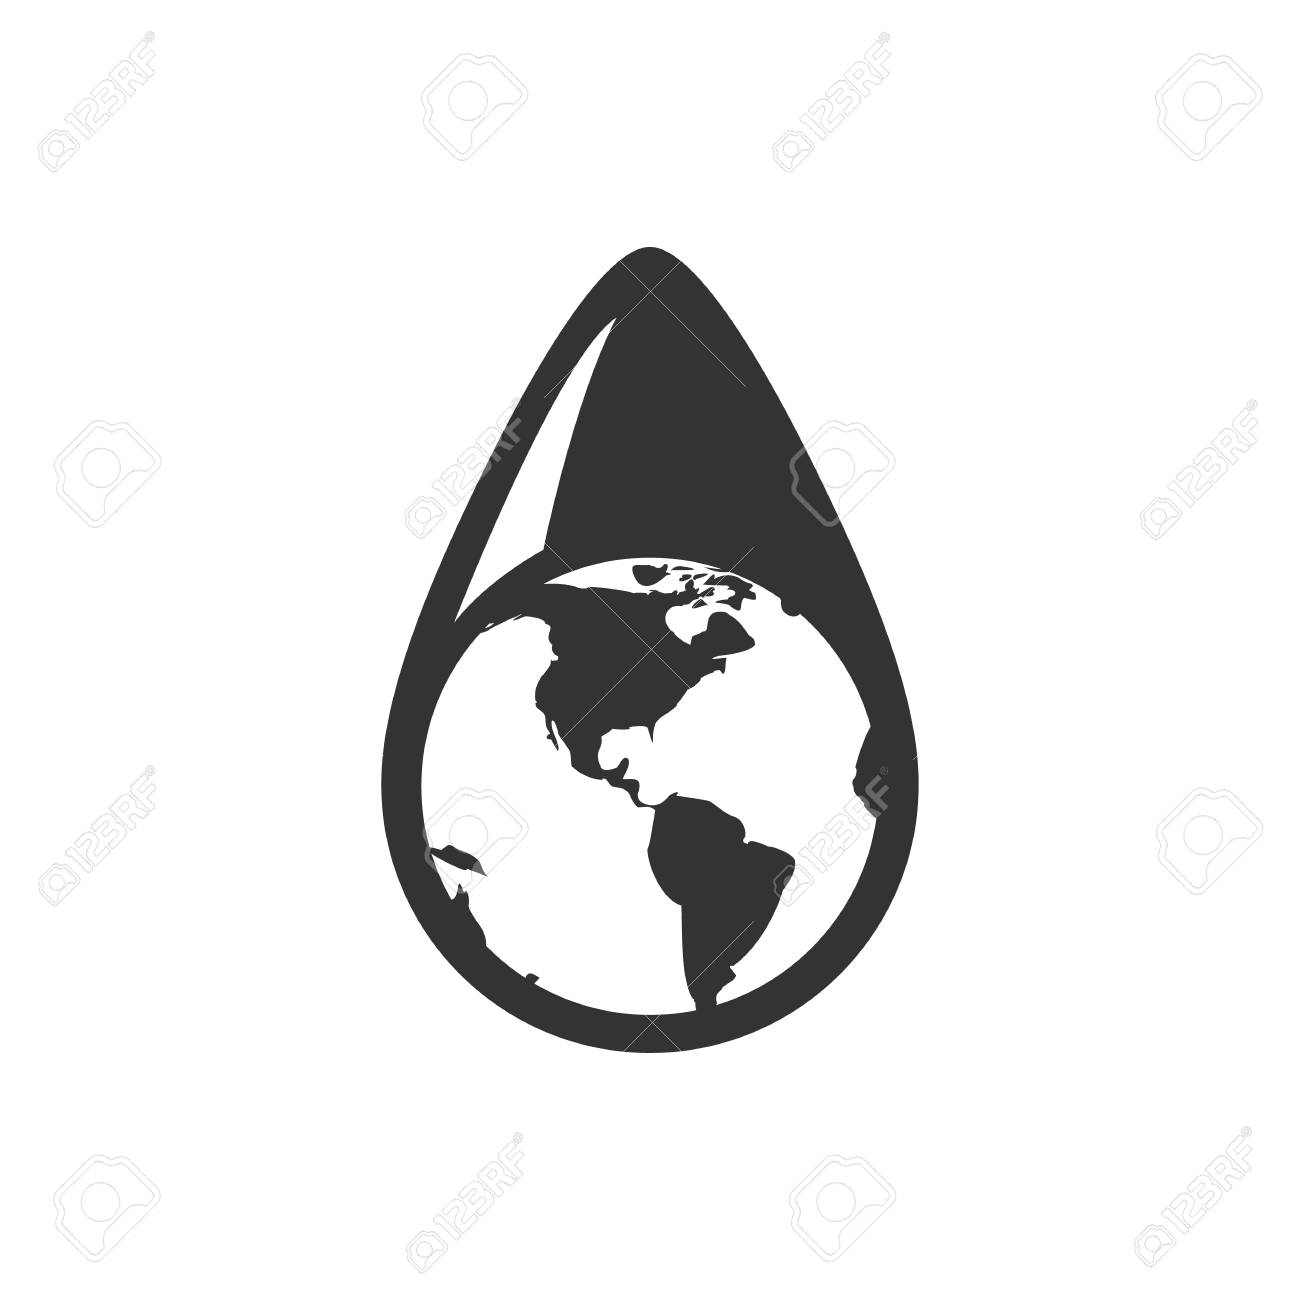 Earth Water Drop Icon In Single Grey Color Climate Change